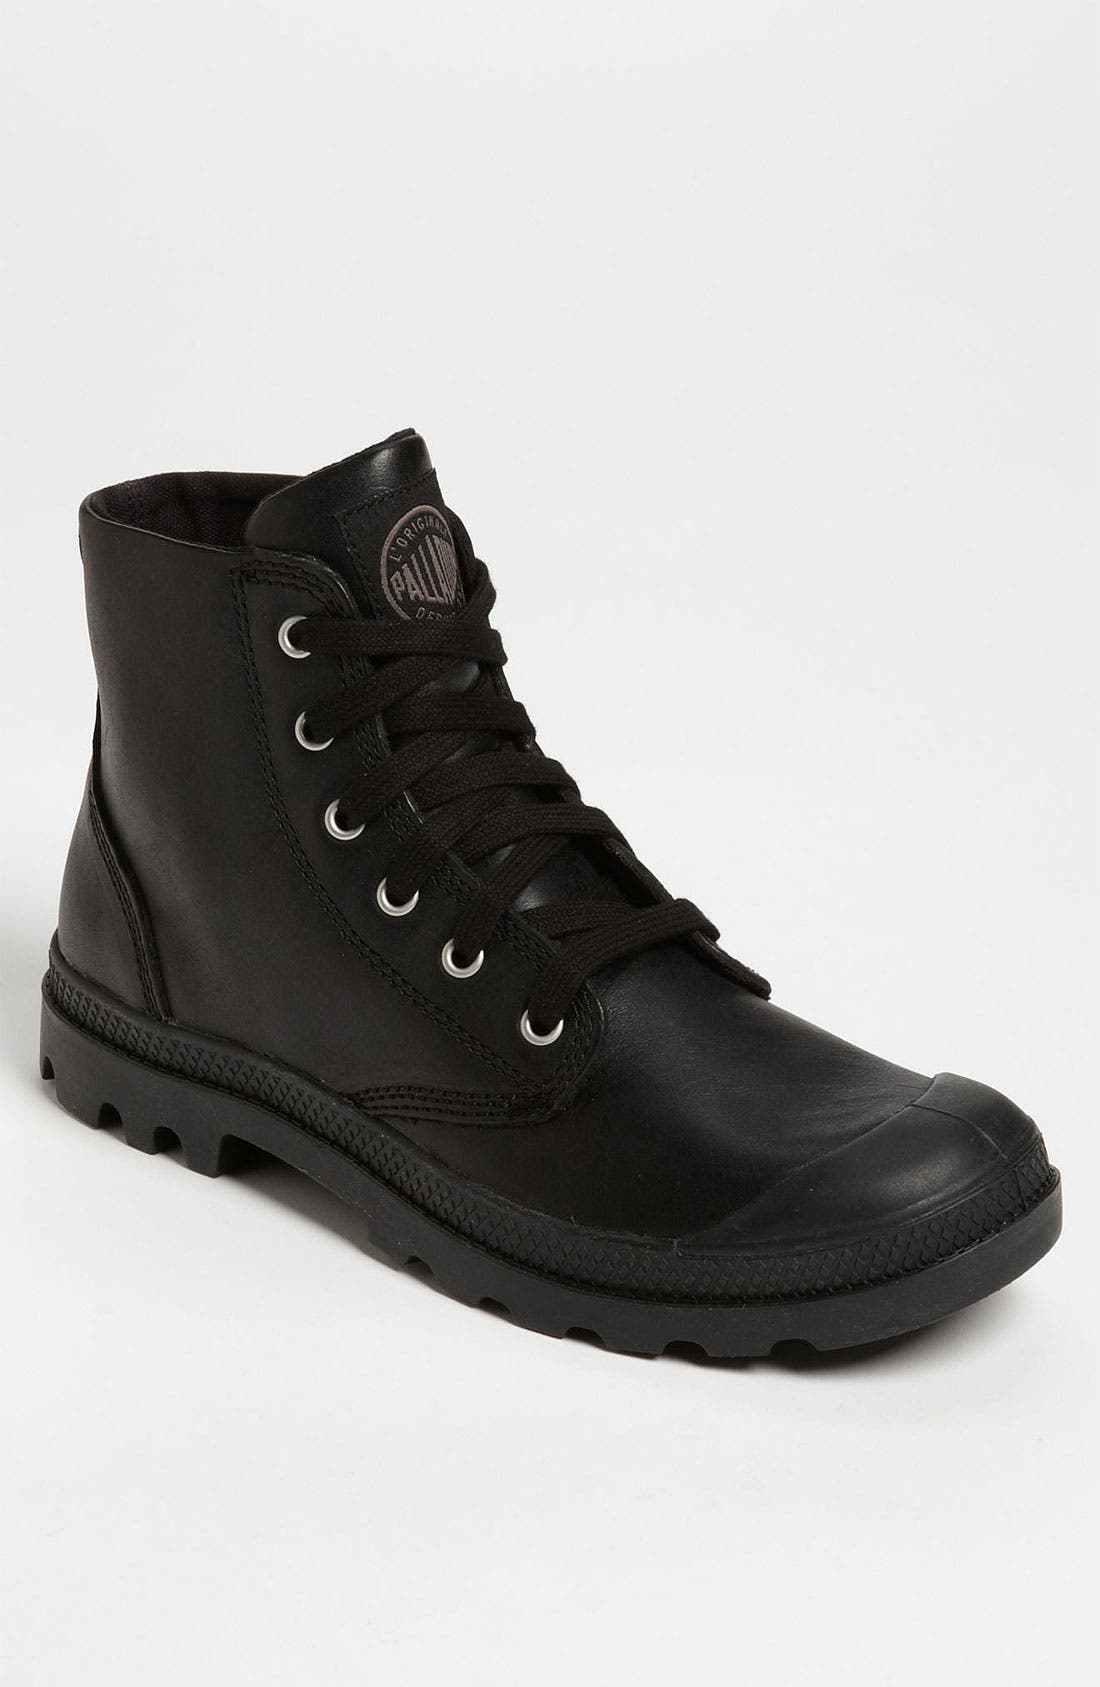 Main Image - Palladium 'Pampa Hi' Leather Boot